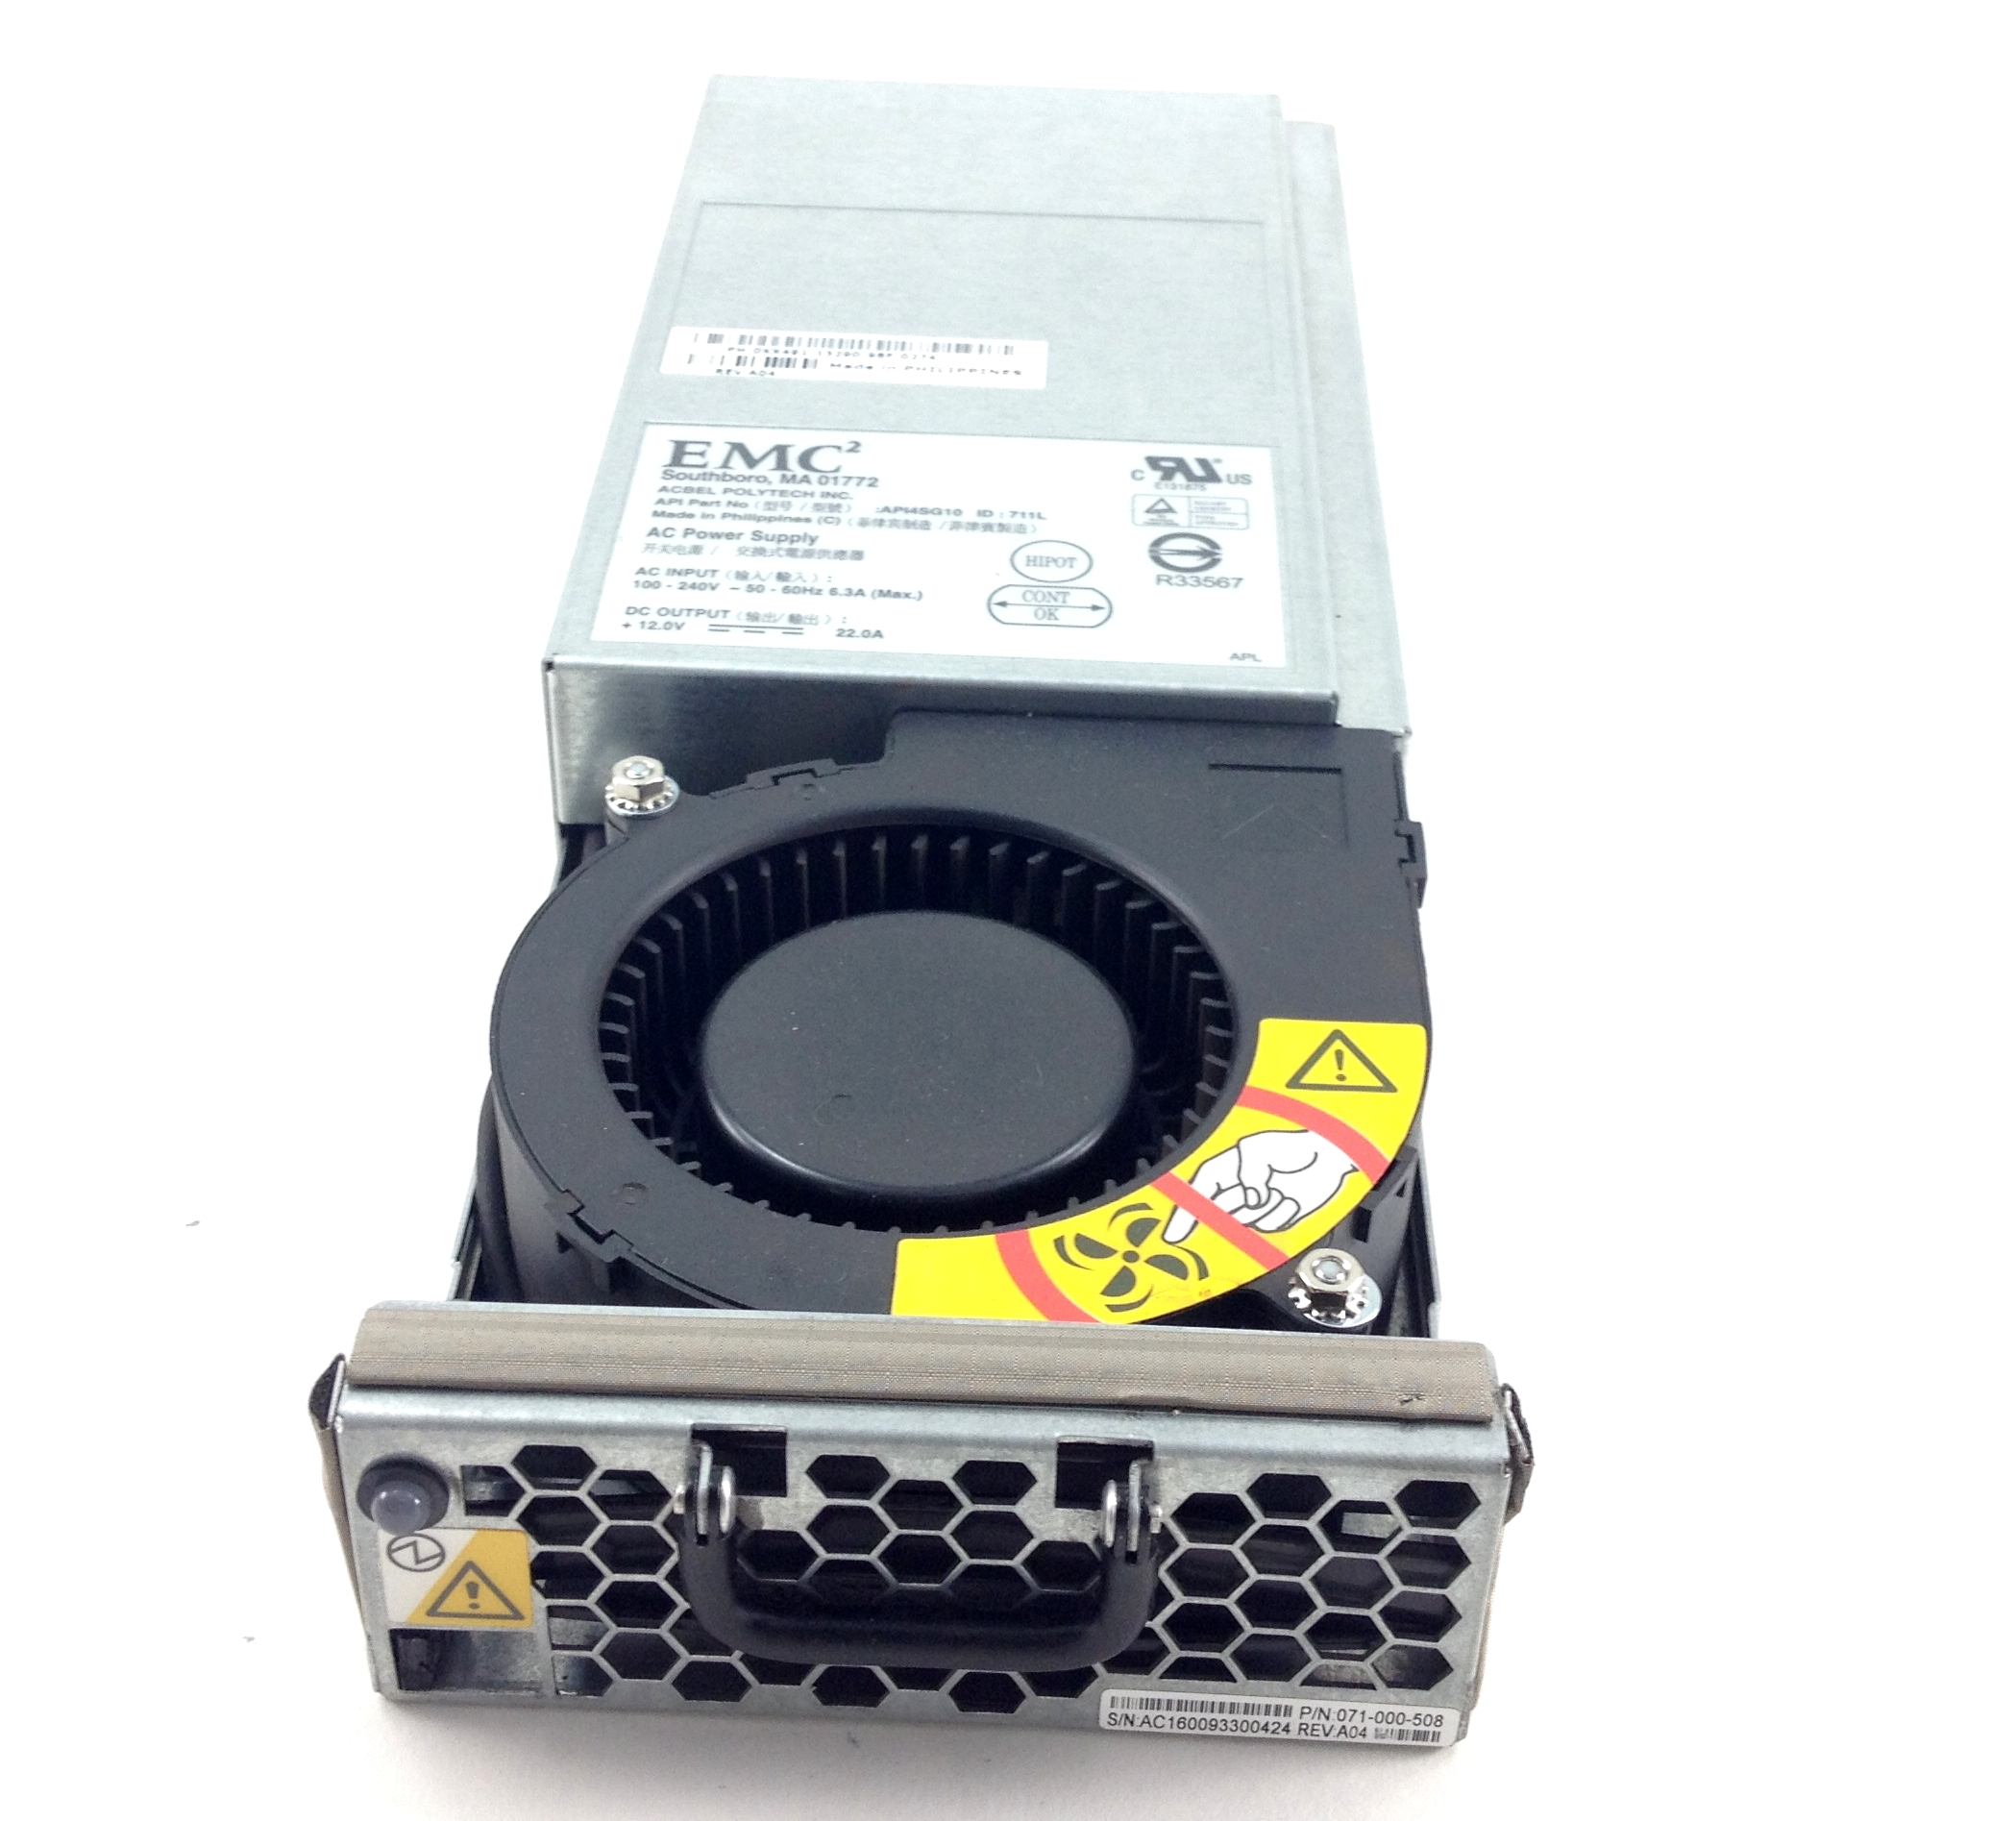 Dell EMCÃ?£Ã?¢Ã?â??Ã?² Storagework Ac Power Supply / Blower Module (XX491)